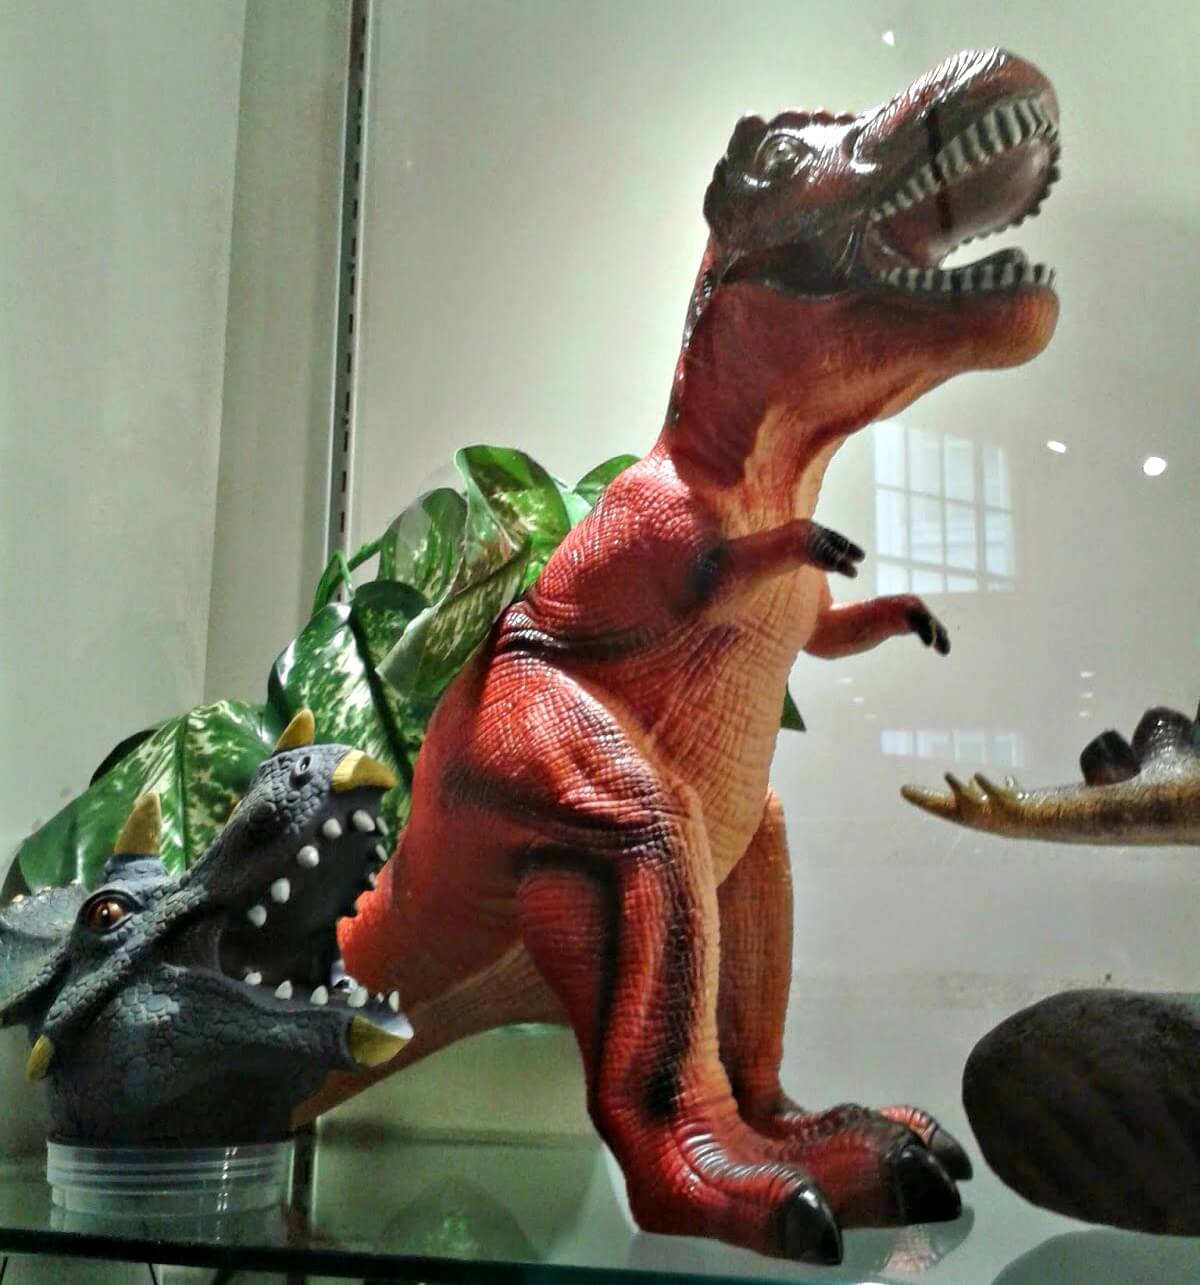 museums to visit in Cardiff - toy dinosaurs in the National Museum Cardiff